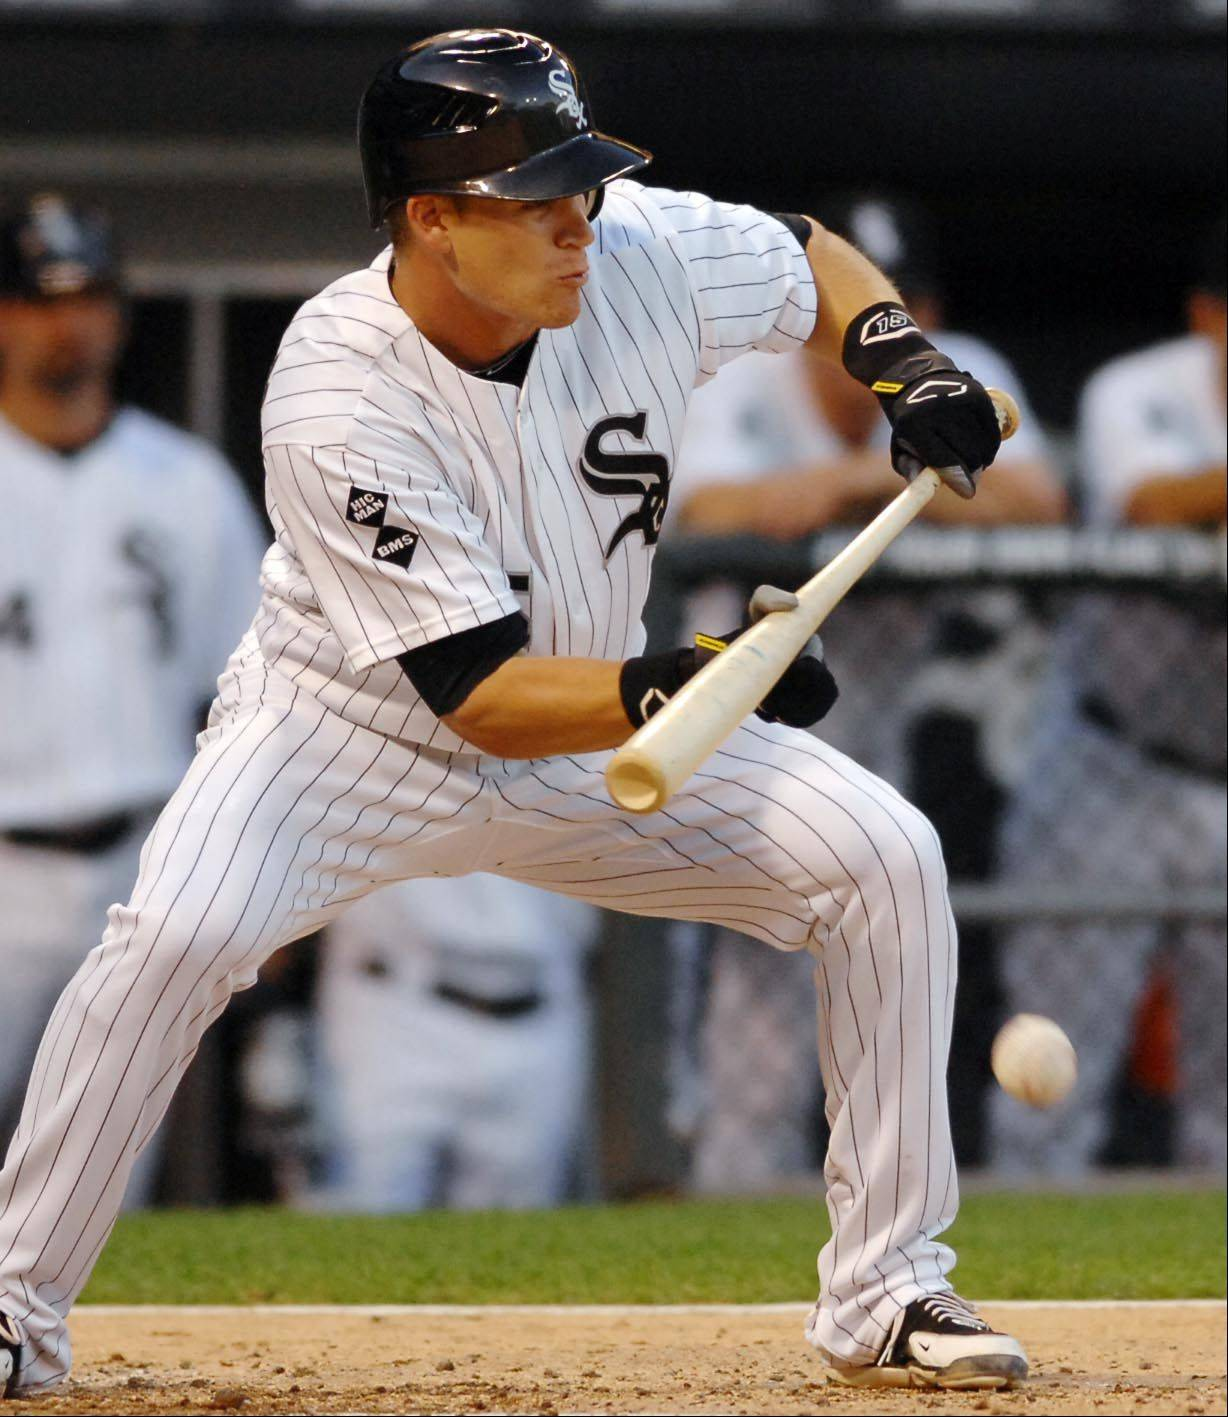 Chicago White Sox second baseman Gordon Beckham lays down a sacrifice bunt in the third inning.